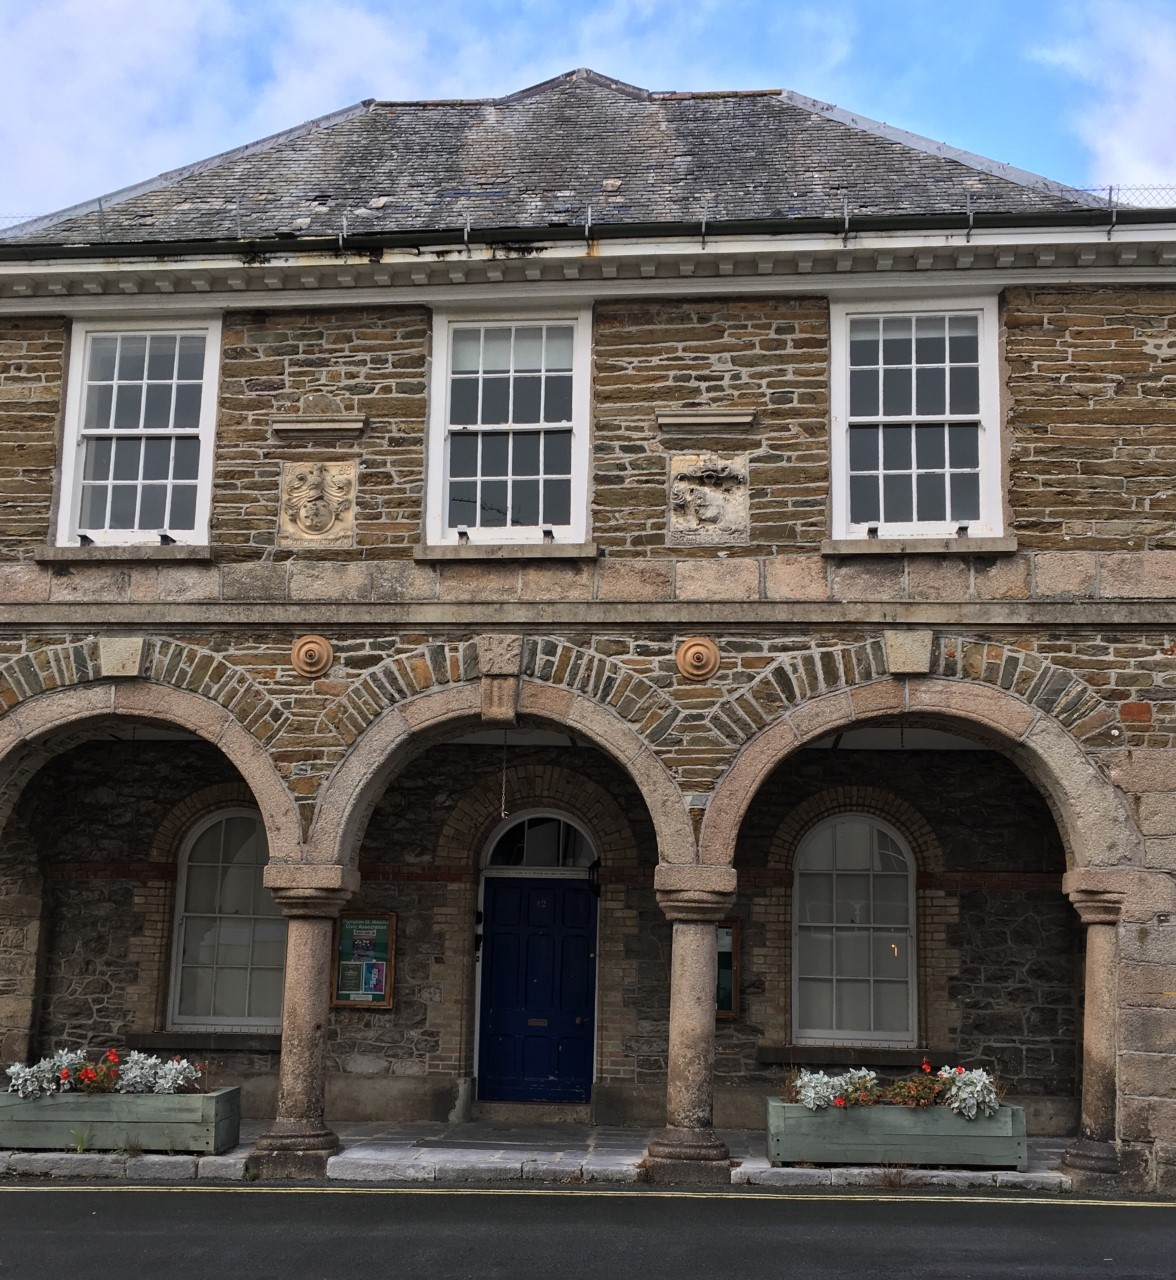 Plympton Erle, Guildhall, exterior